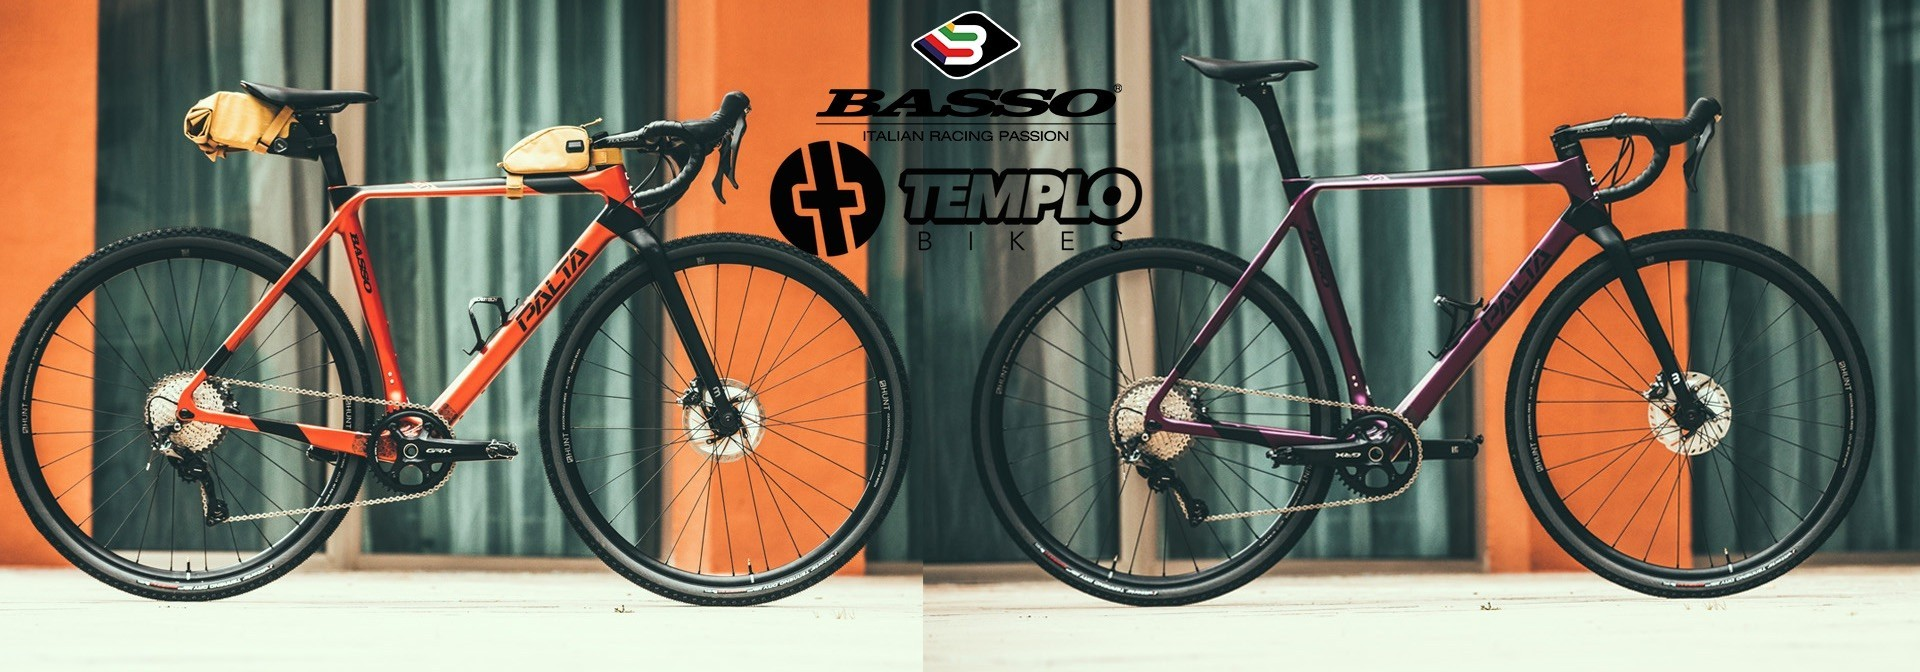 Basso by Templobikes